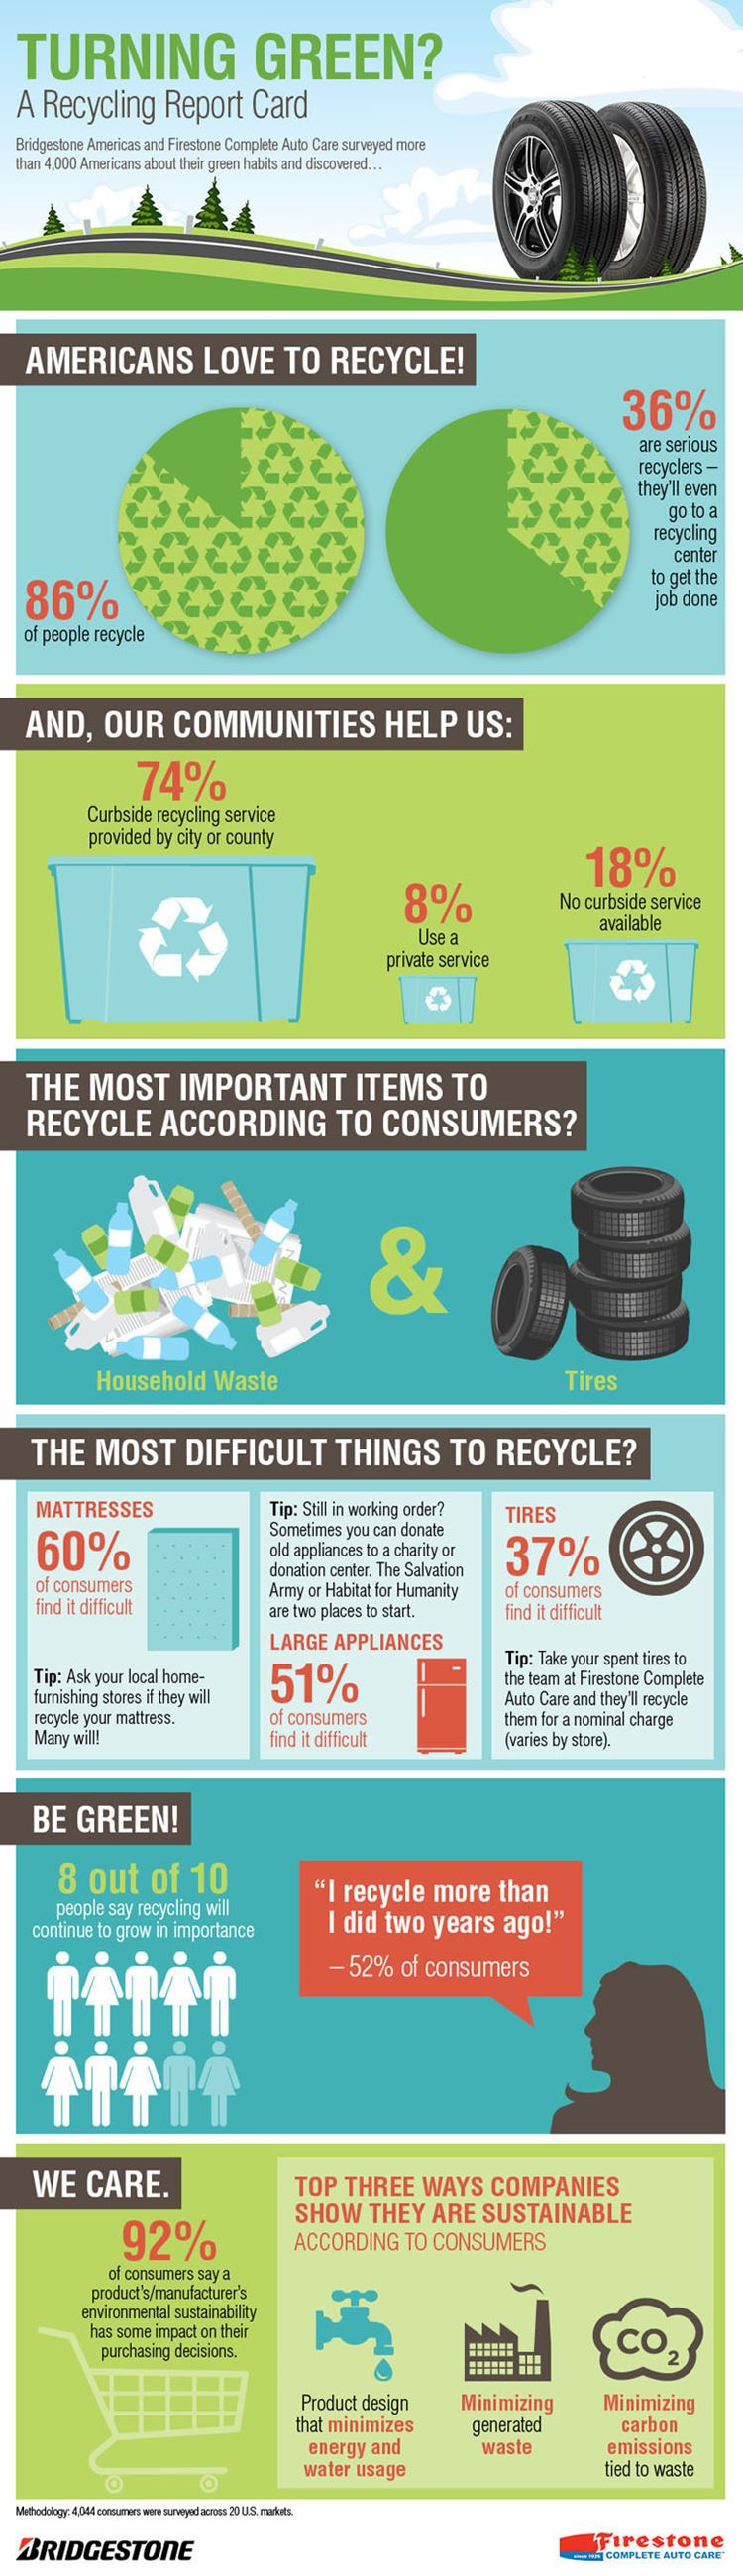 Bridgetone-recycling-survey-infographic